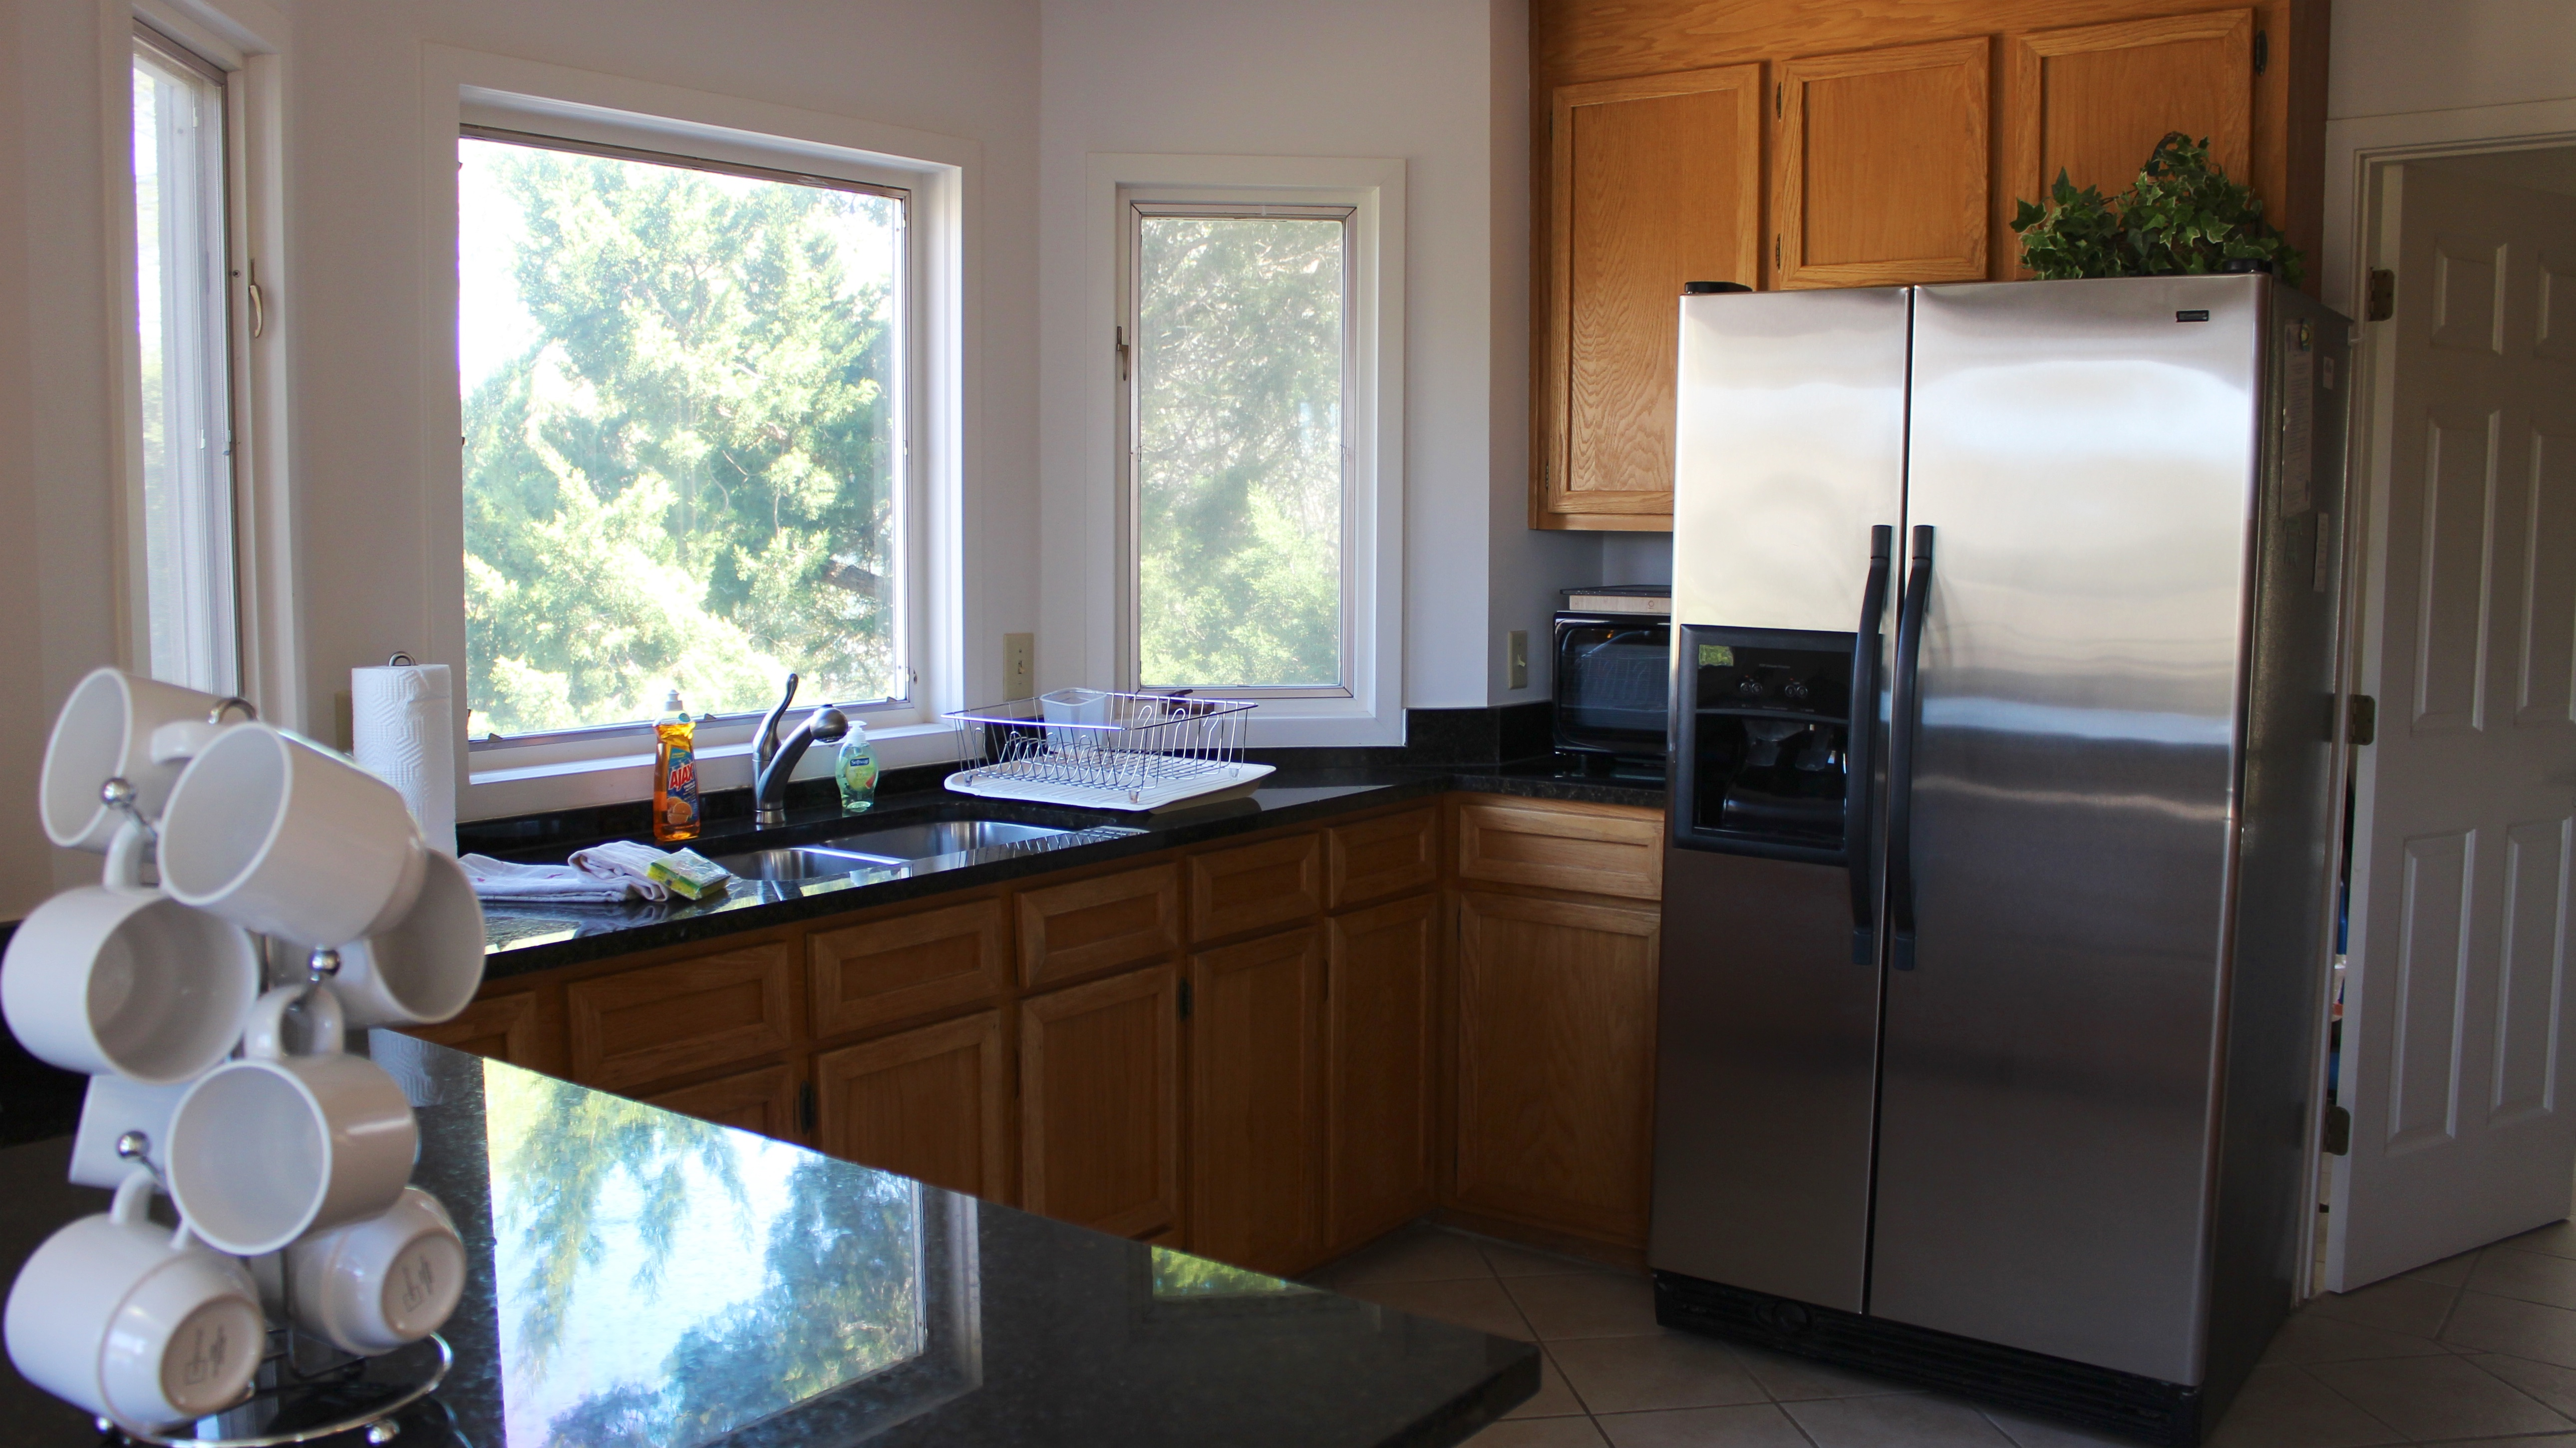 The kitchen features granite counters, tile flooring and great views.